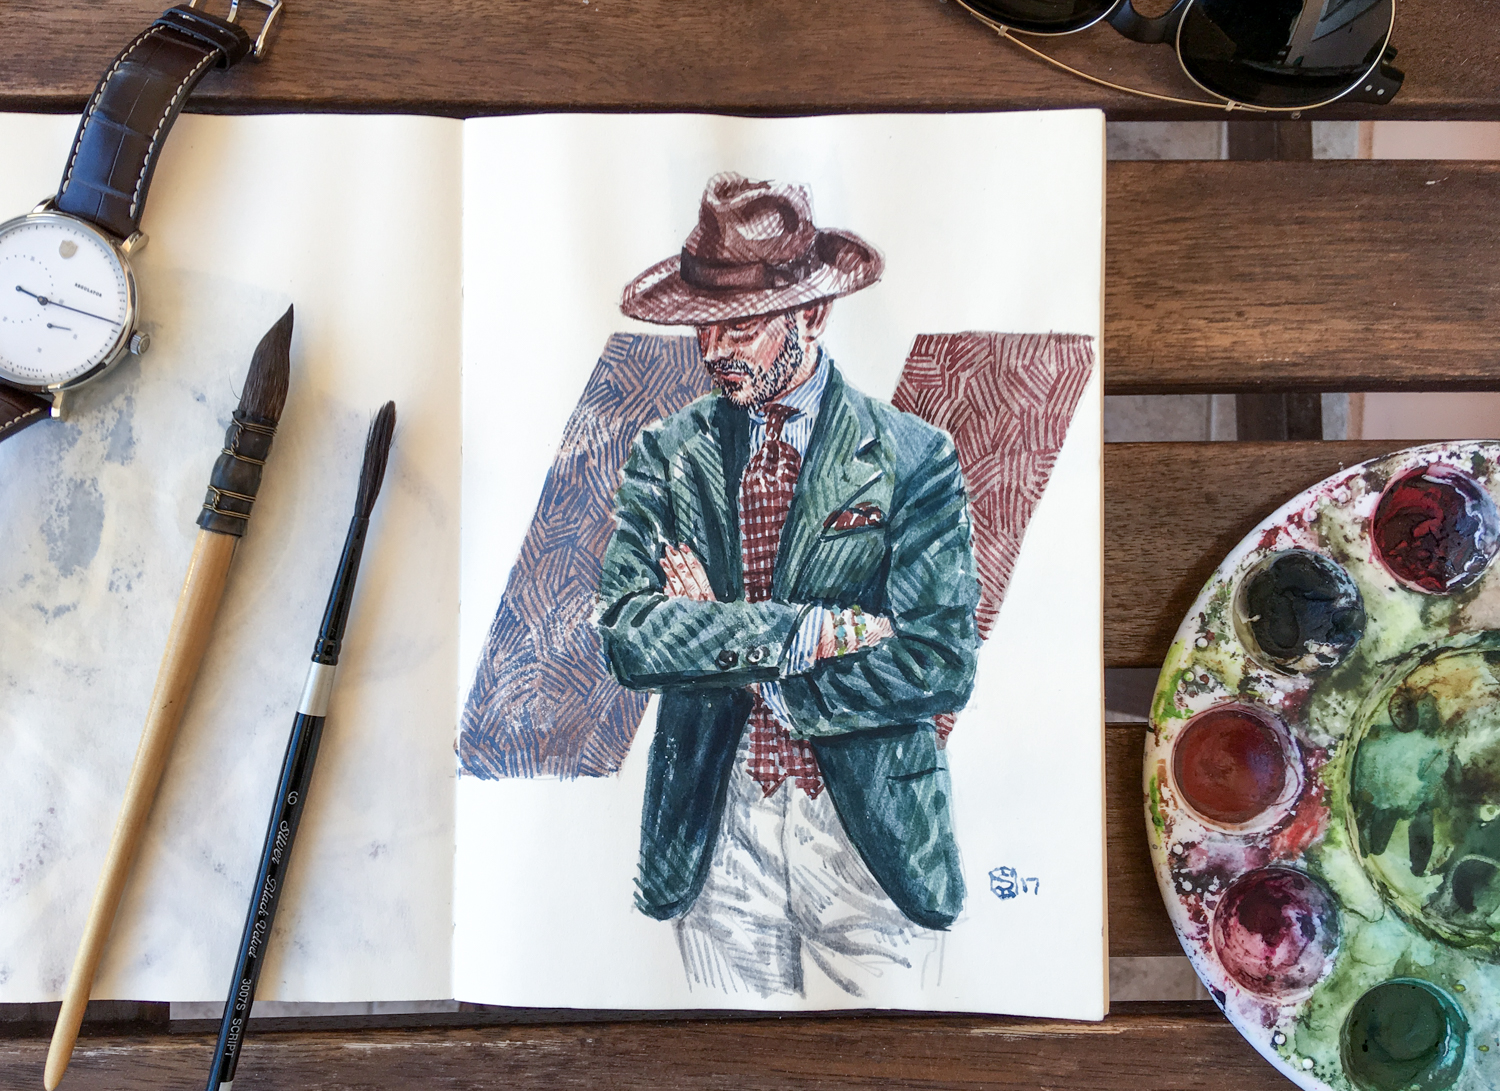 Sketchbook open to page with men's fashion illustration of Benedikt Fries, founder of Shibumi Firenze.